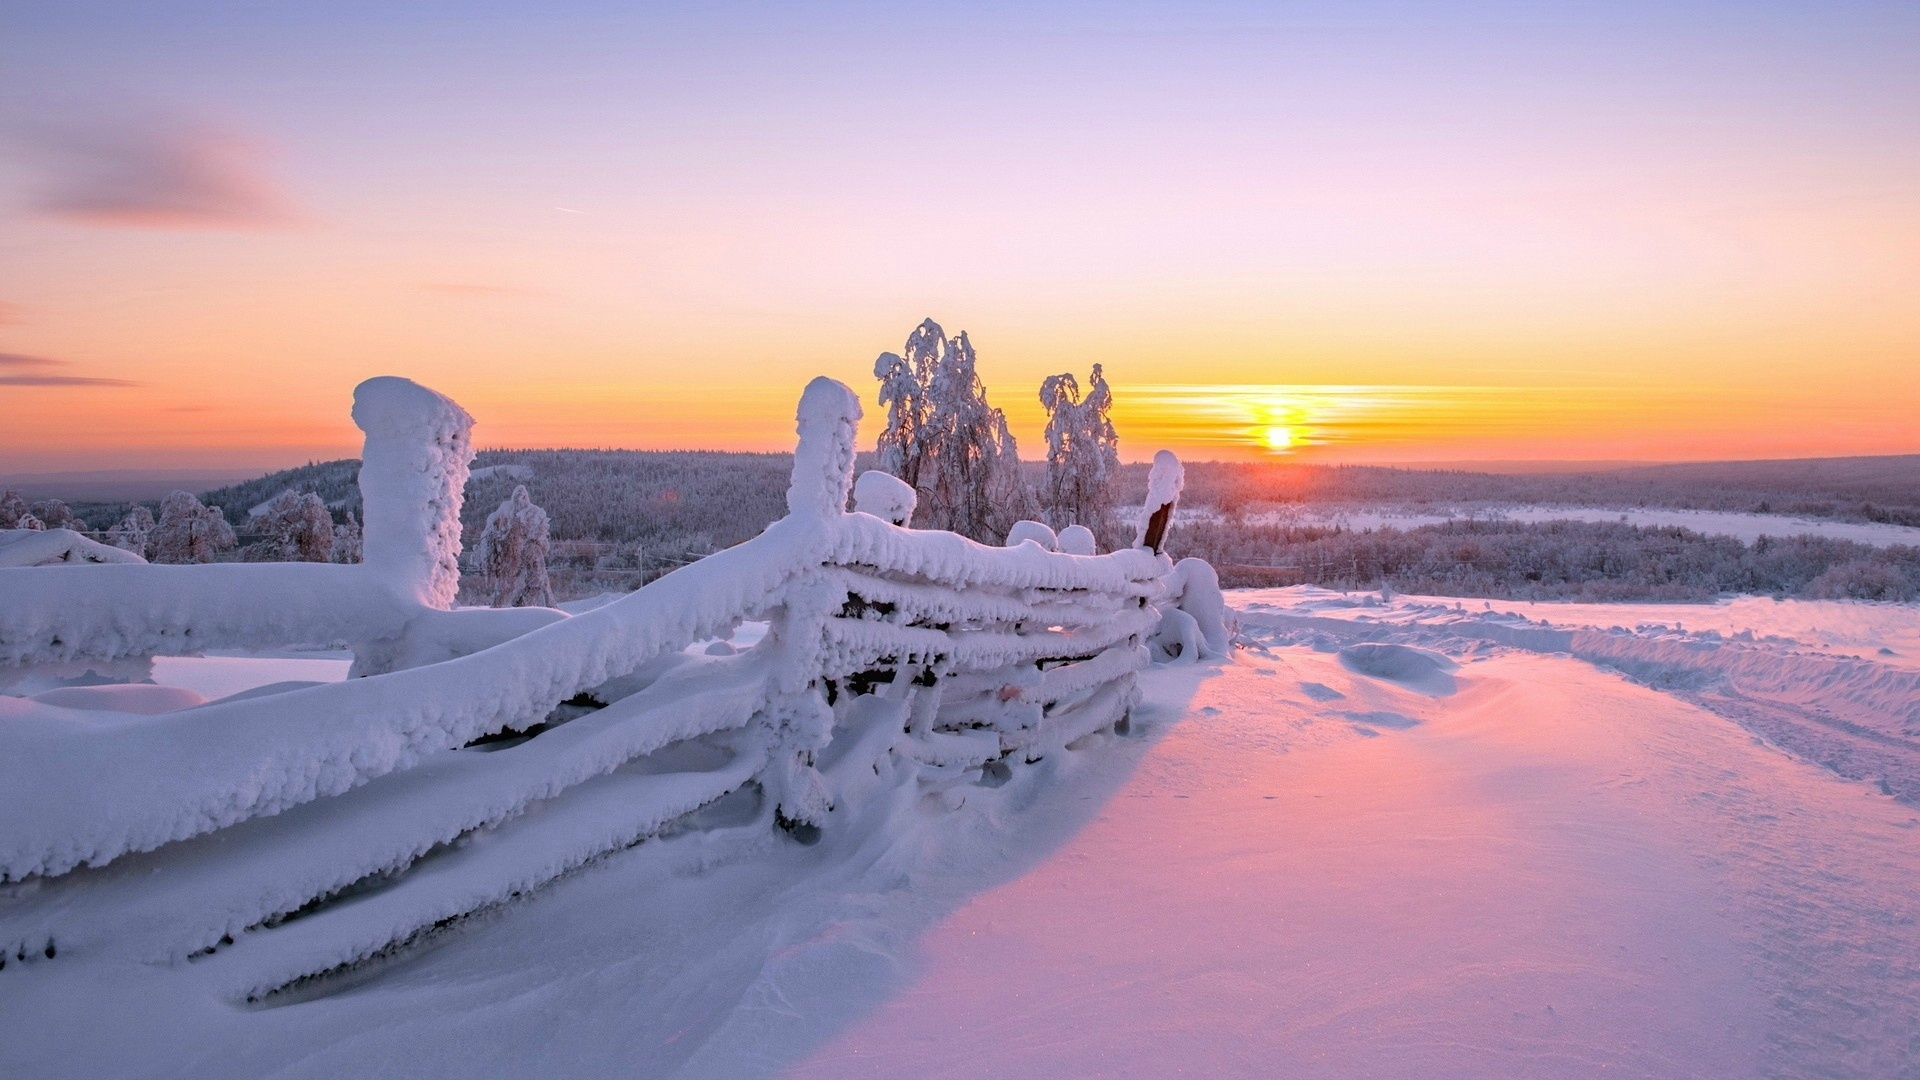 First Snow Wallpaper Winter Nature Wallpapers in jpg format for